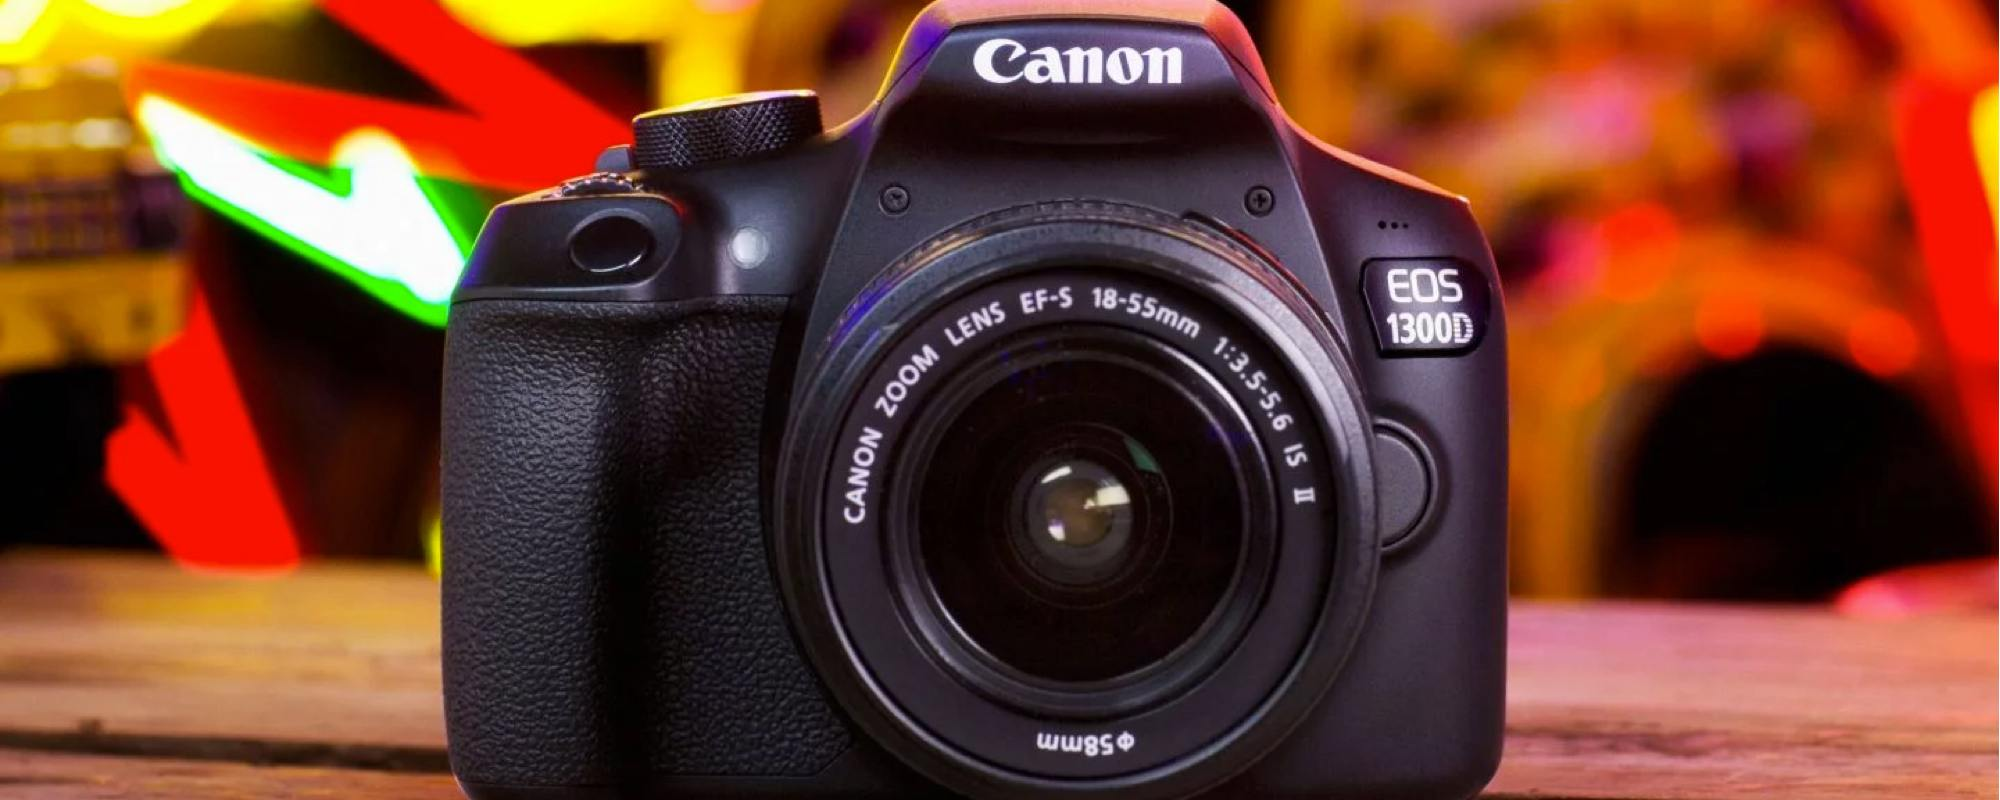 Rent Canon Eos 1300d At Low Prices Kamera 18 55 Iii